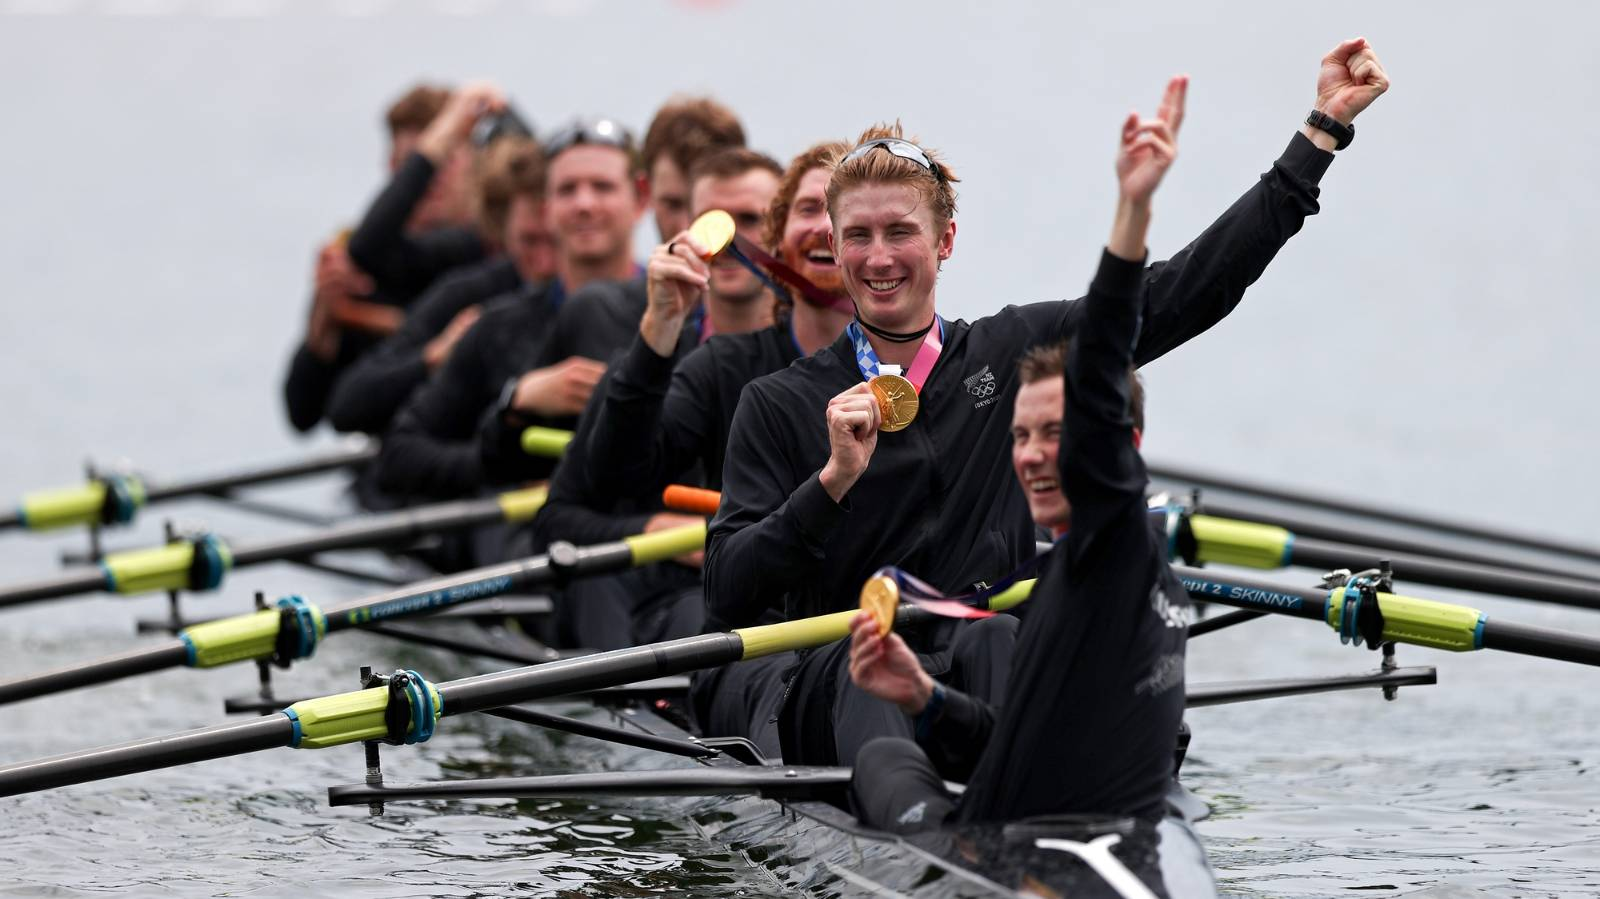 Our finest hour: Rowers' medal plunder a new Olympic high point